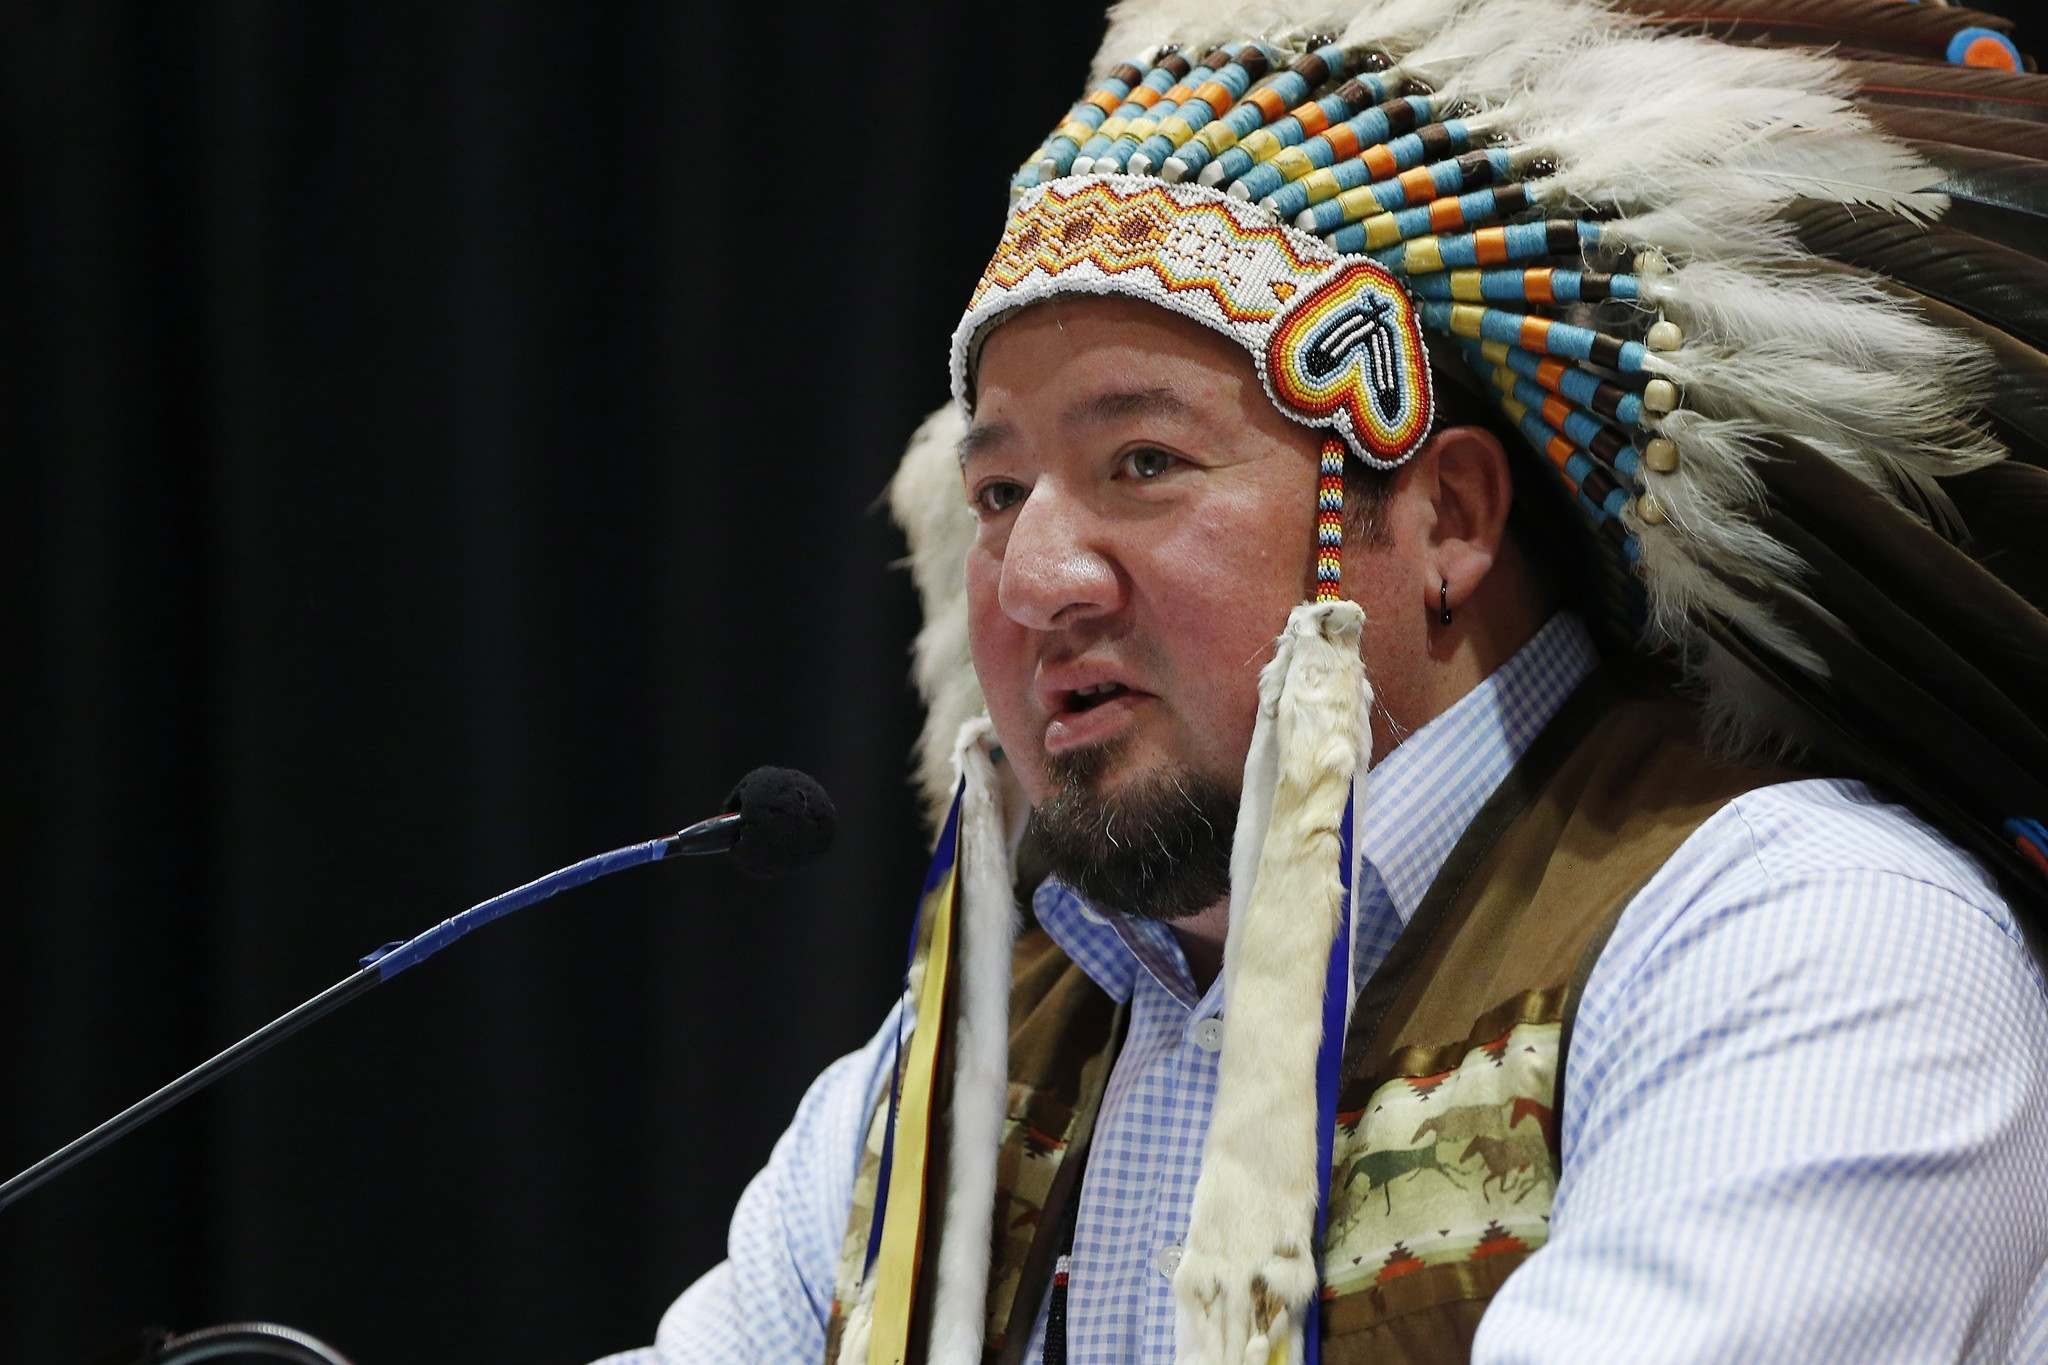 JOHN WOODS / THE CANADIAN PRESS FILES</p><p>Grand Chief Derek Nepinak speaks at a conference on climate change and the environment in Winnipeg last November. Some Manitoba chiefs took part in a ceremonial signing of the Treaty Alliance Against Tar Sands Expansion. </p>